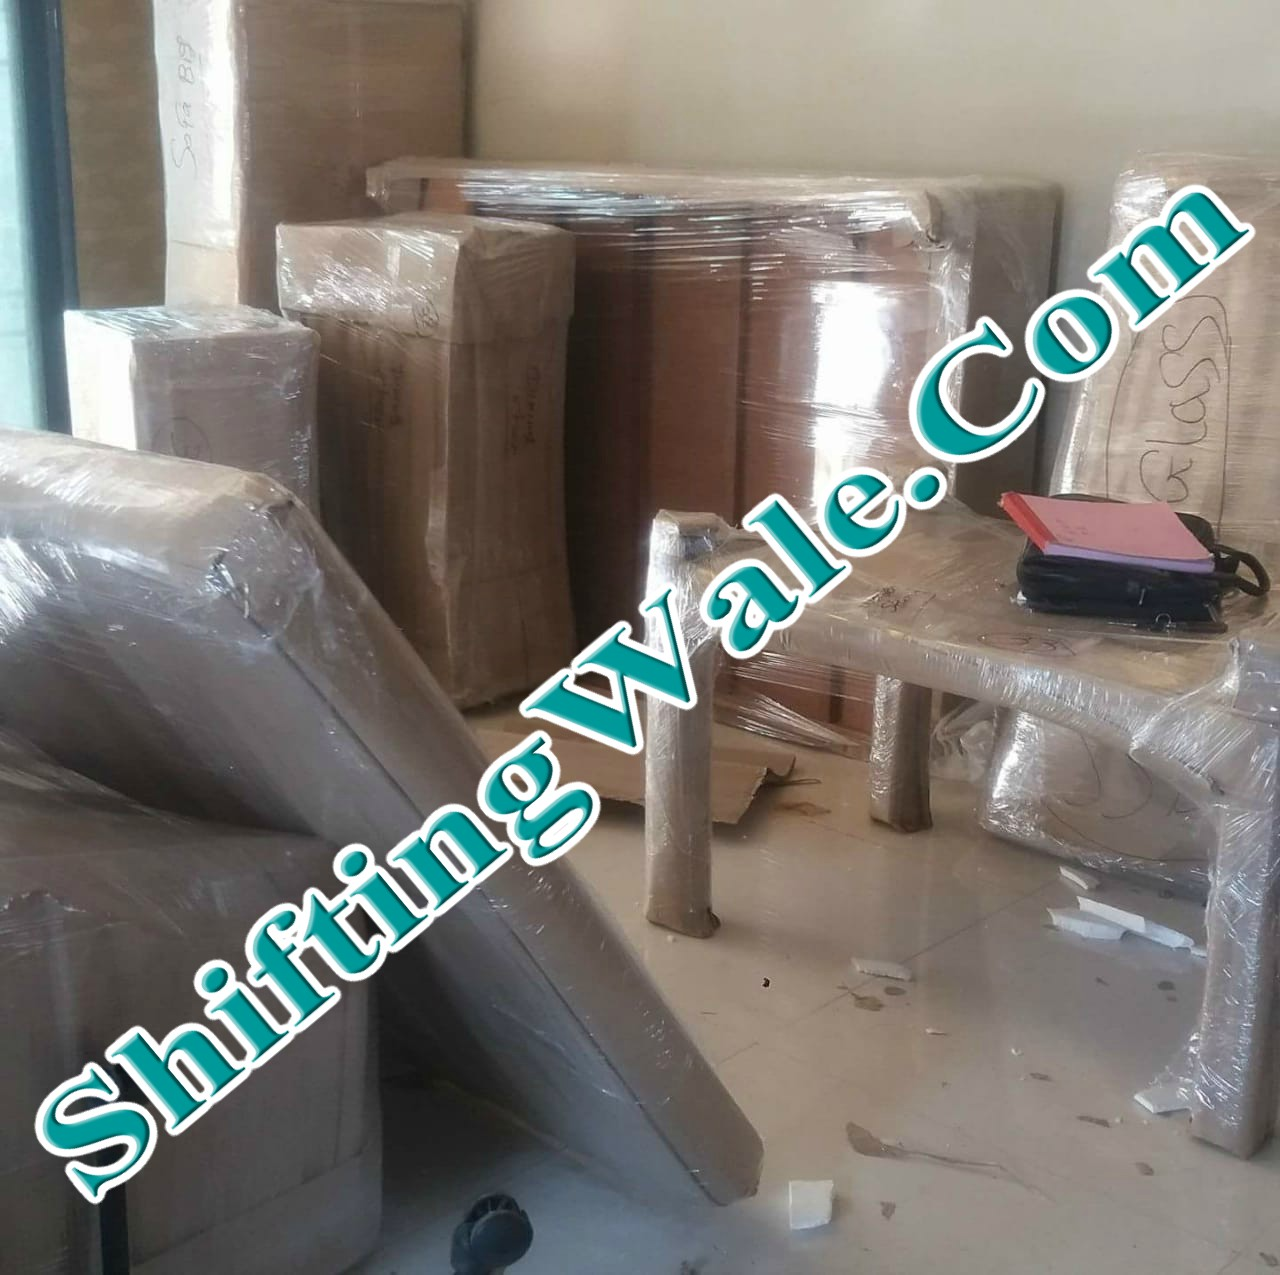 Faridabad to Jodhpur Trusted Packers and Movers Get Best Rates